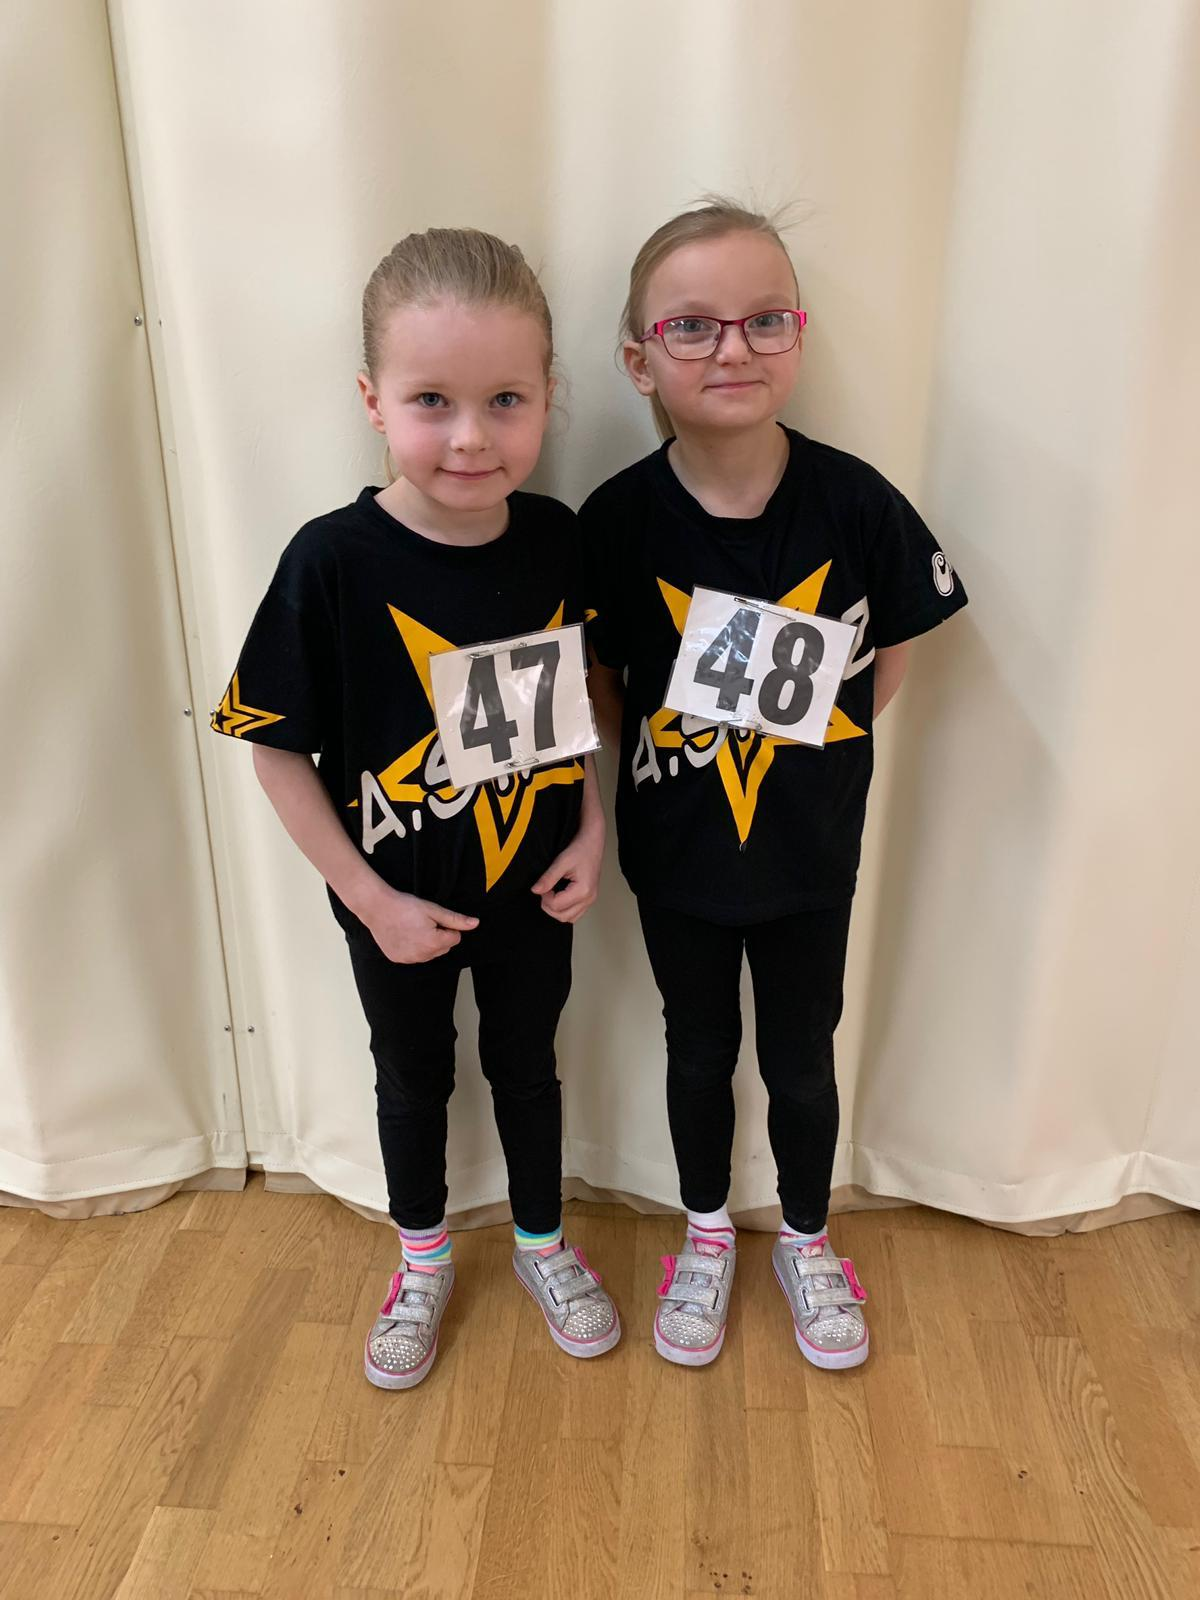 Two girls wearing A Stars t-shirts and exam numbers